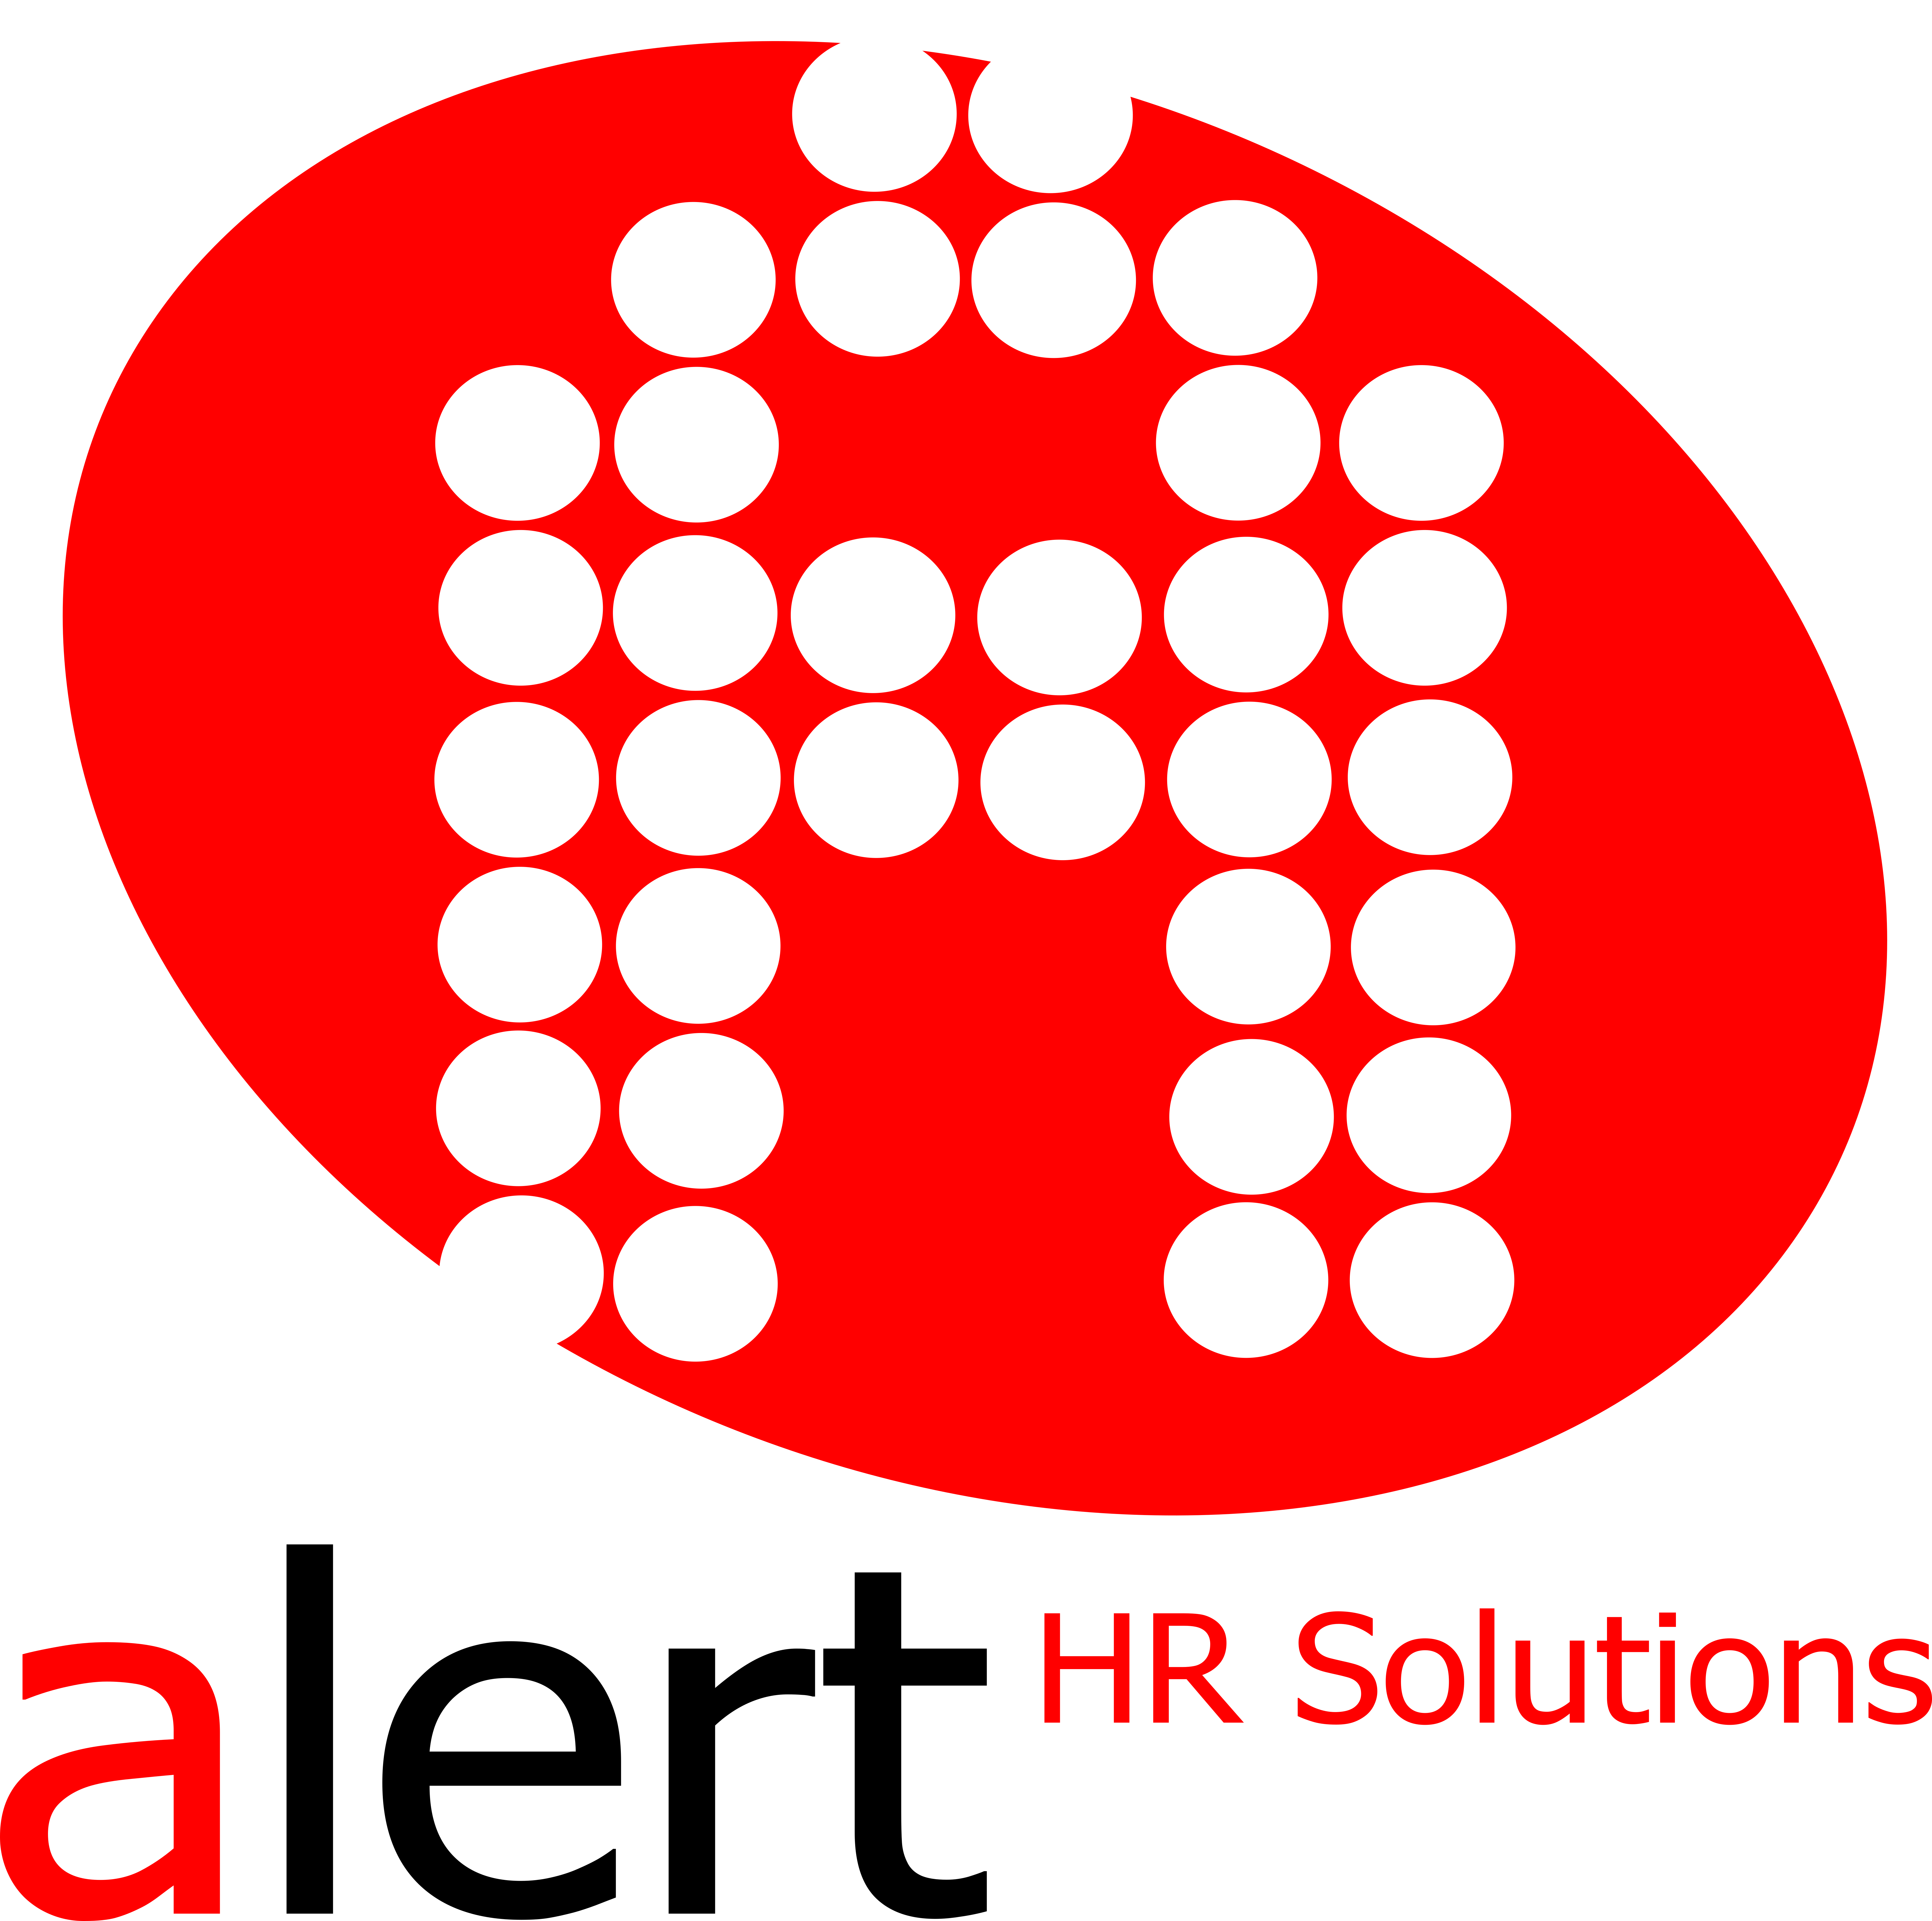 More about Alert HR Solutions